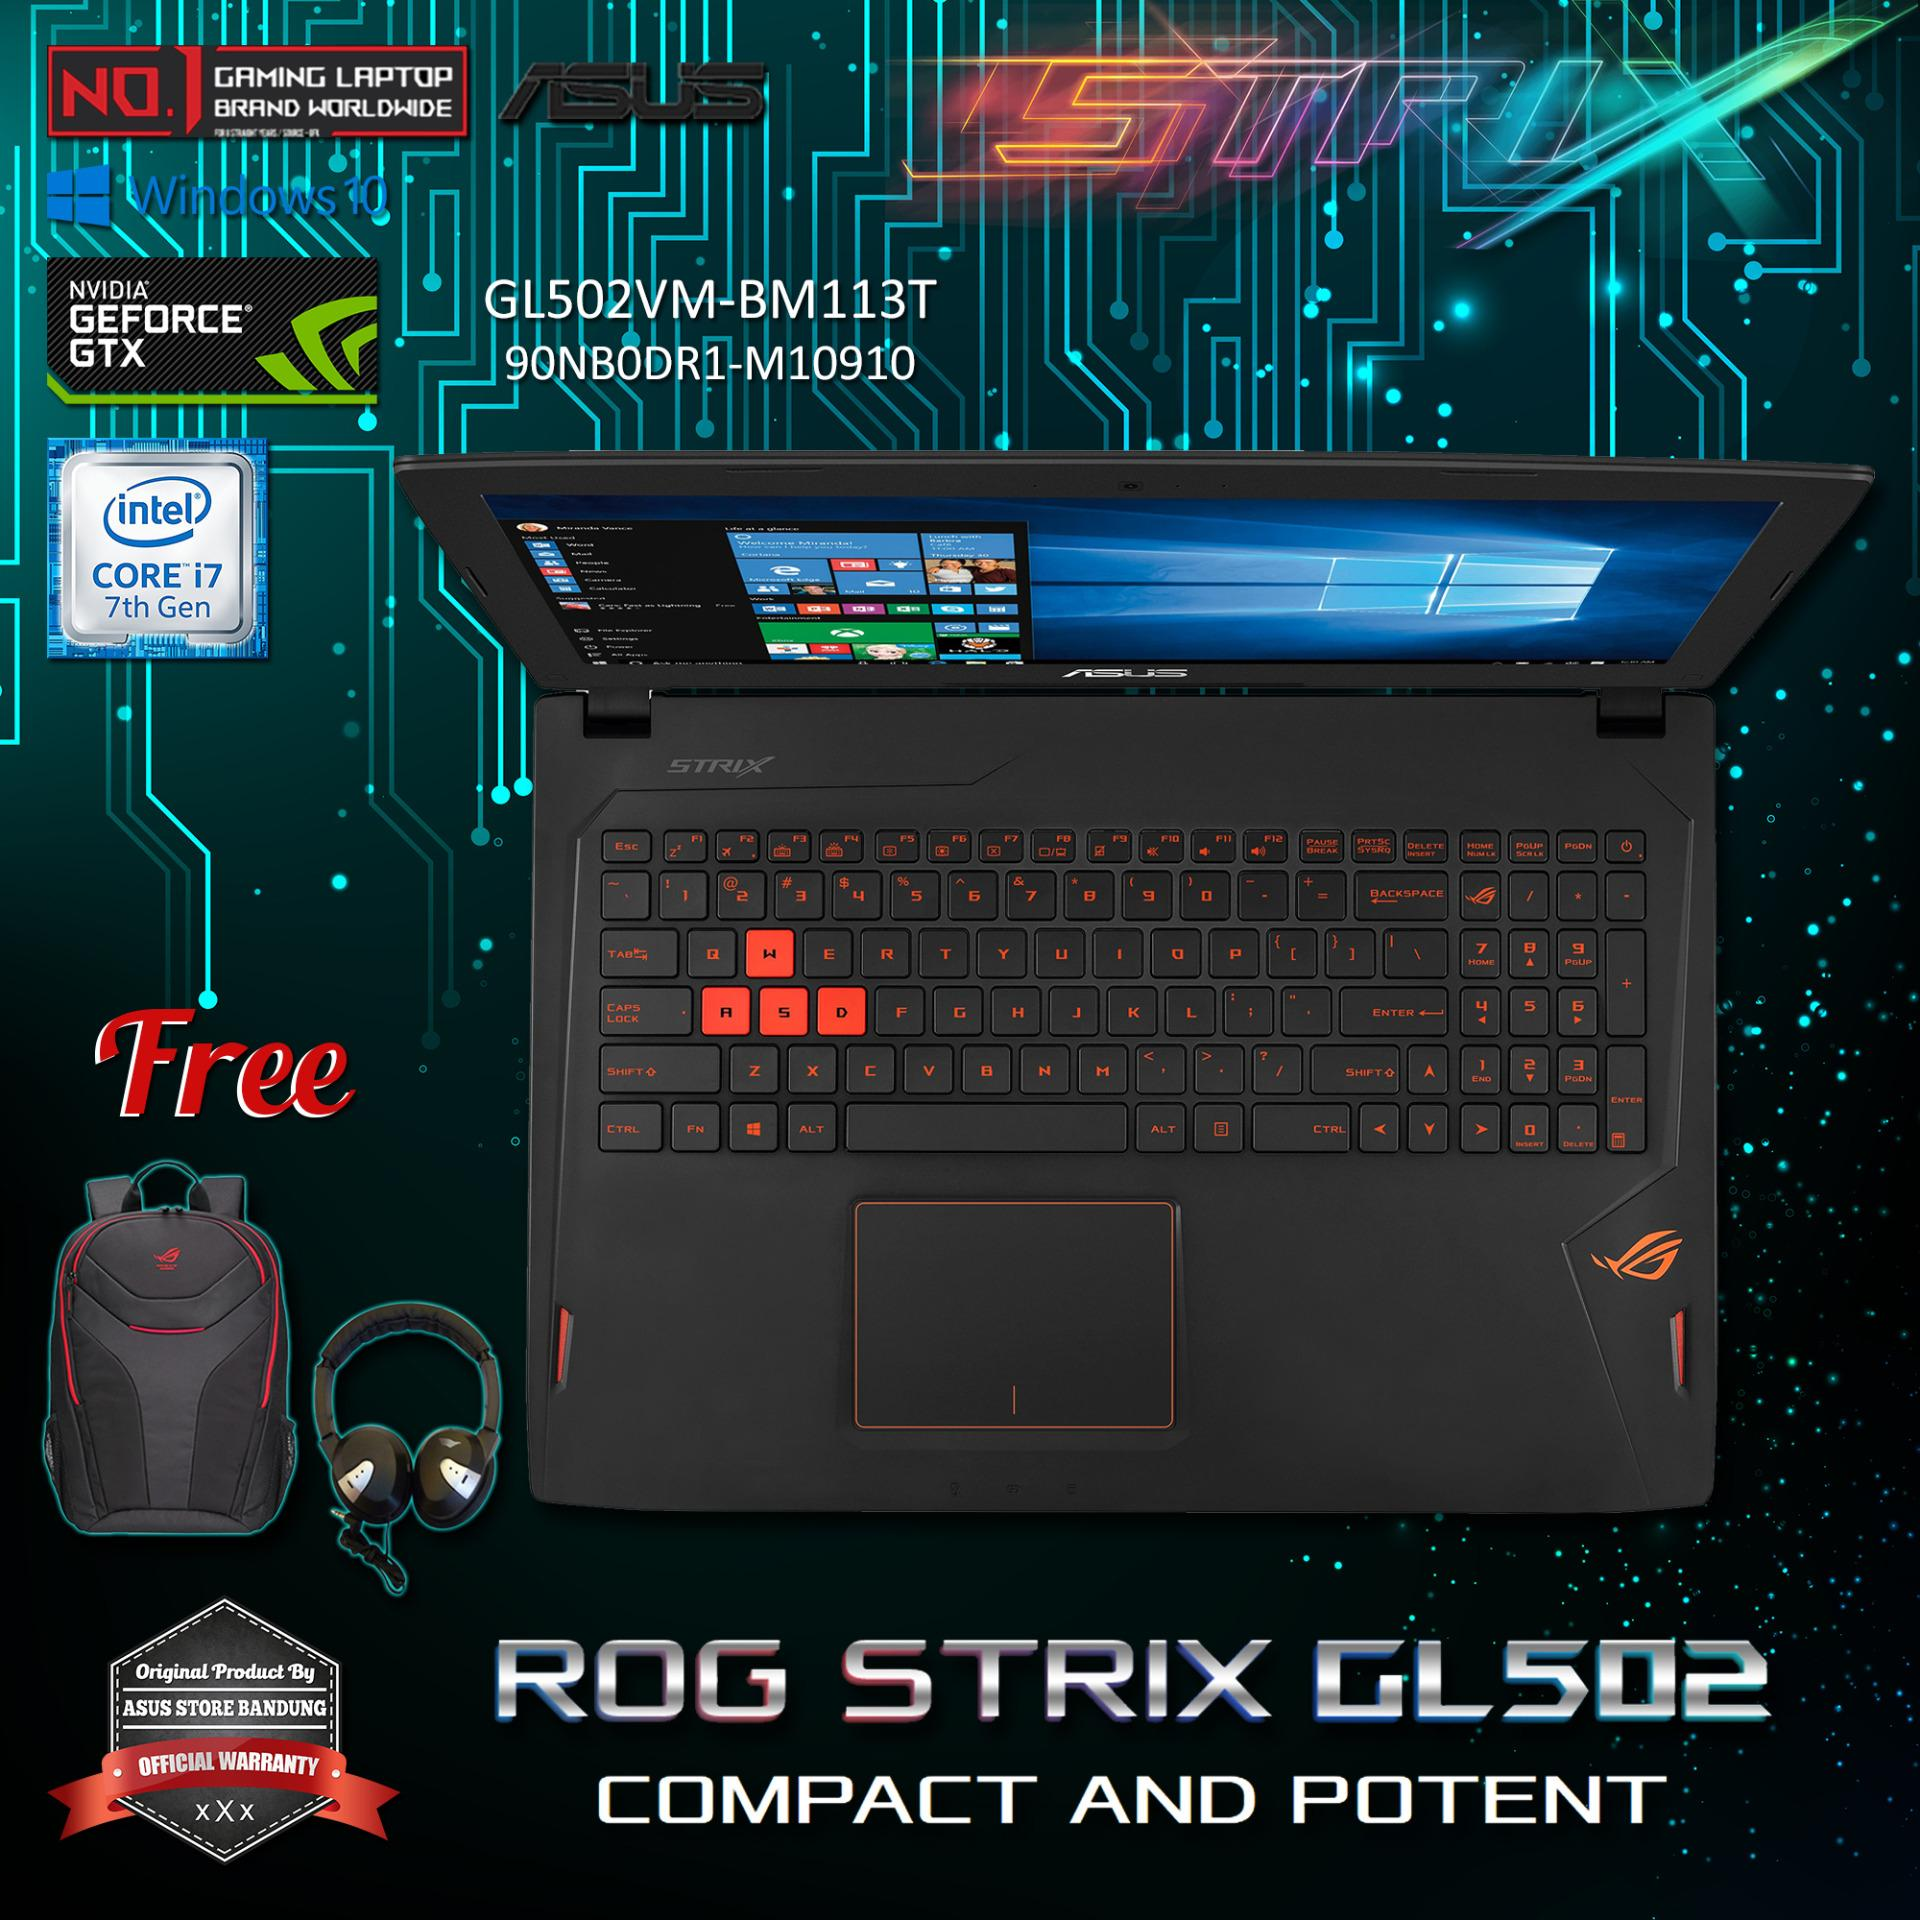 Asus ROG Strix GL502VM-BM113T (90NB0DR1-M10910) Intel(R) Core(TM) i7 7700HQ NVIDIA GeForce GTX 1060 3GB 16GB RAM DDR4 1TB HDD + 128GB SSD + Windows 10 Original + Free Headphone + ROG Backpack